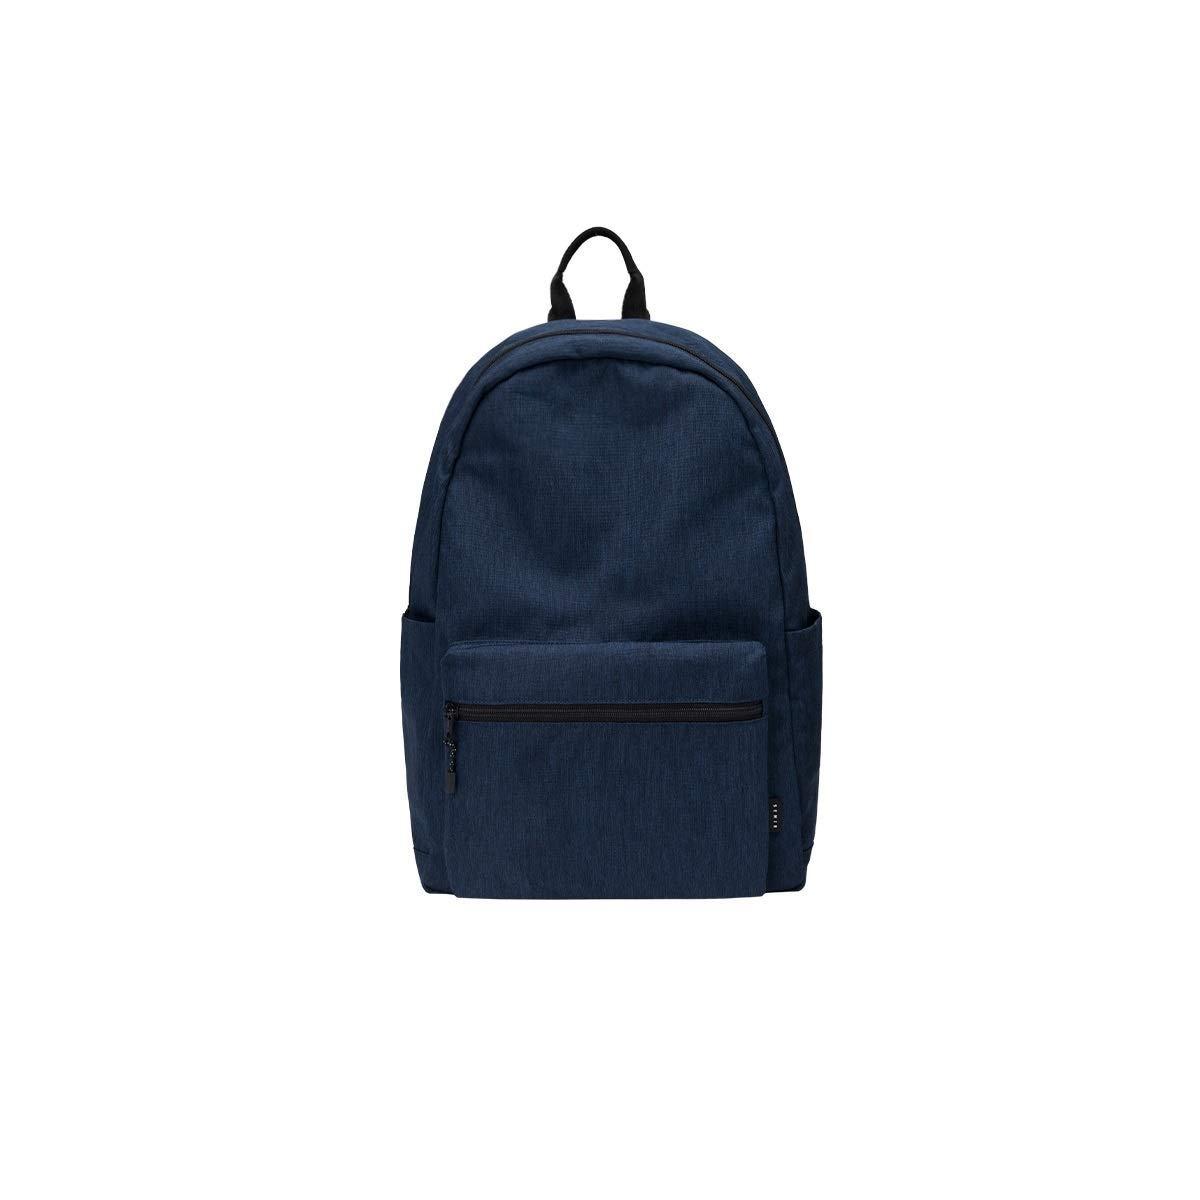 TONGBOSHI Backpack Male, Backpack Casual Simple Trend Travel Bag Female Large Capacity Computer Bag School Bag Male College Student (Color : Blue)